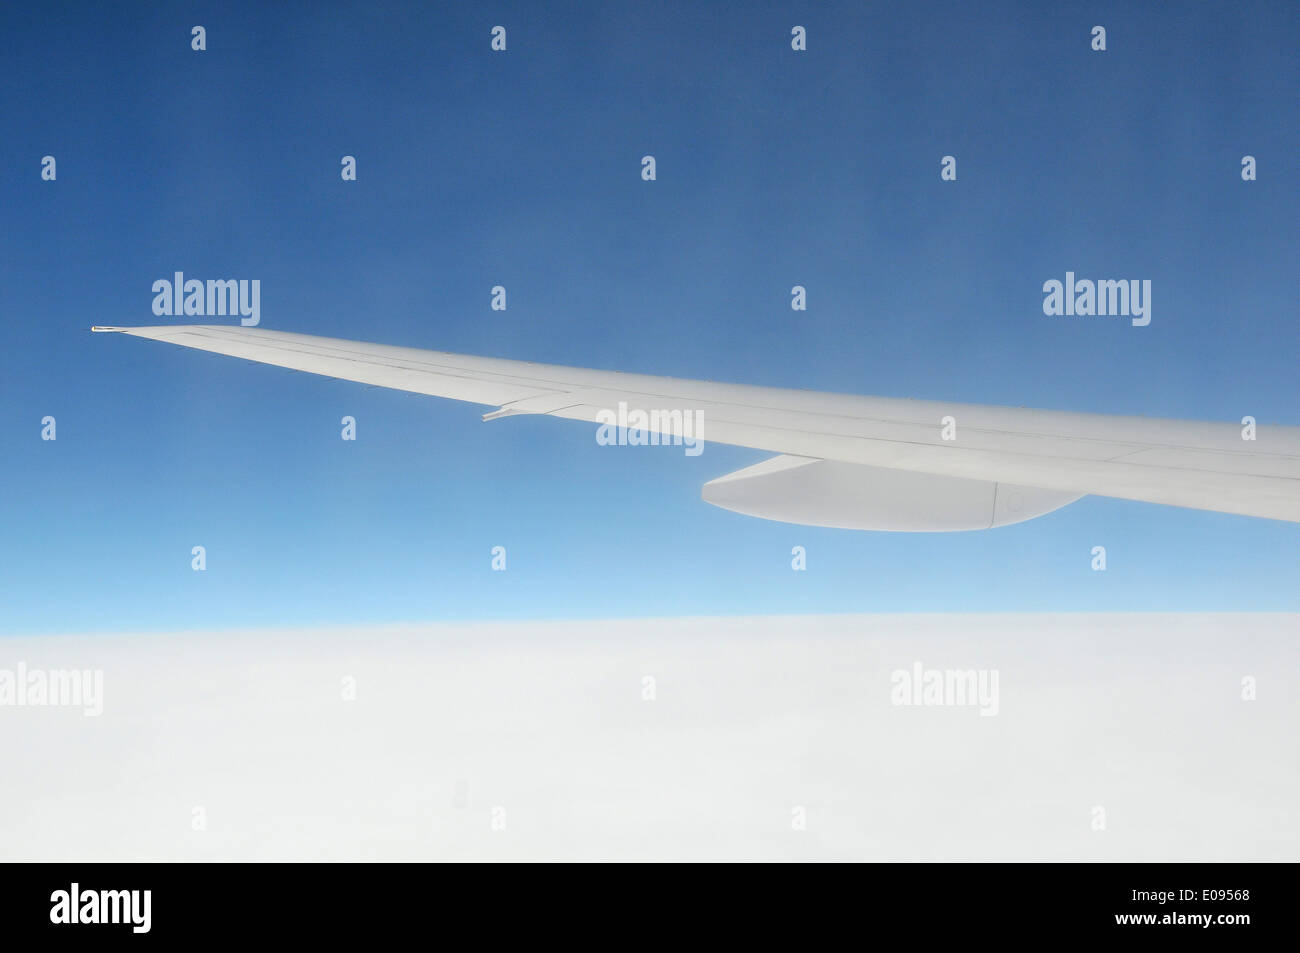 Airplane wing in blue sky - Stock Image